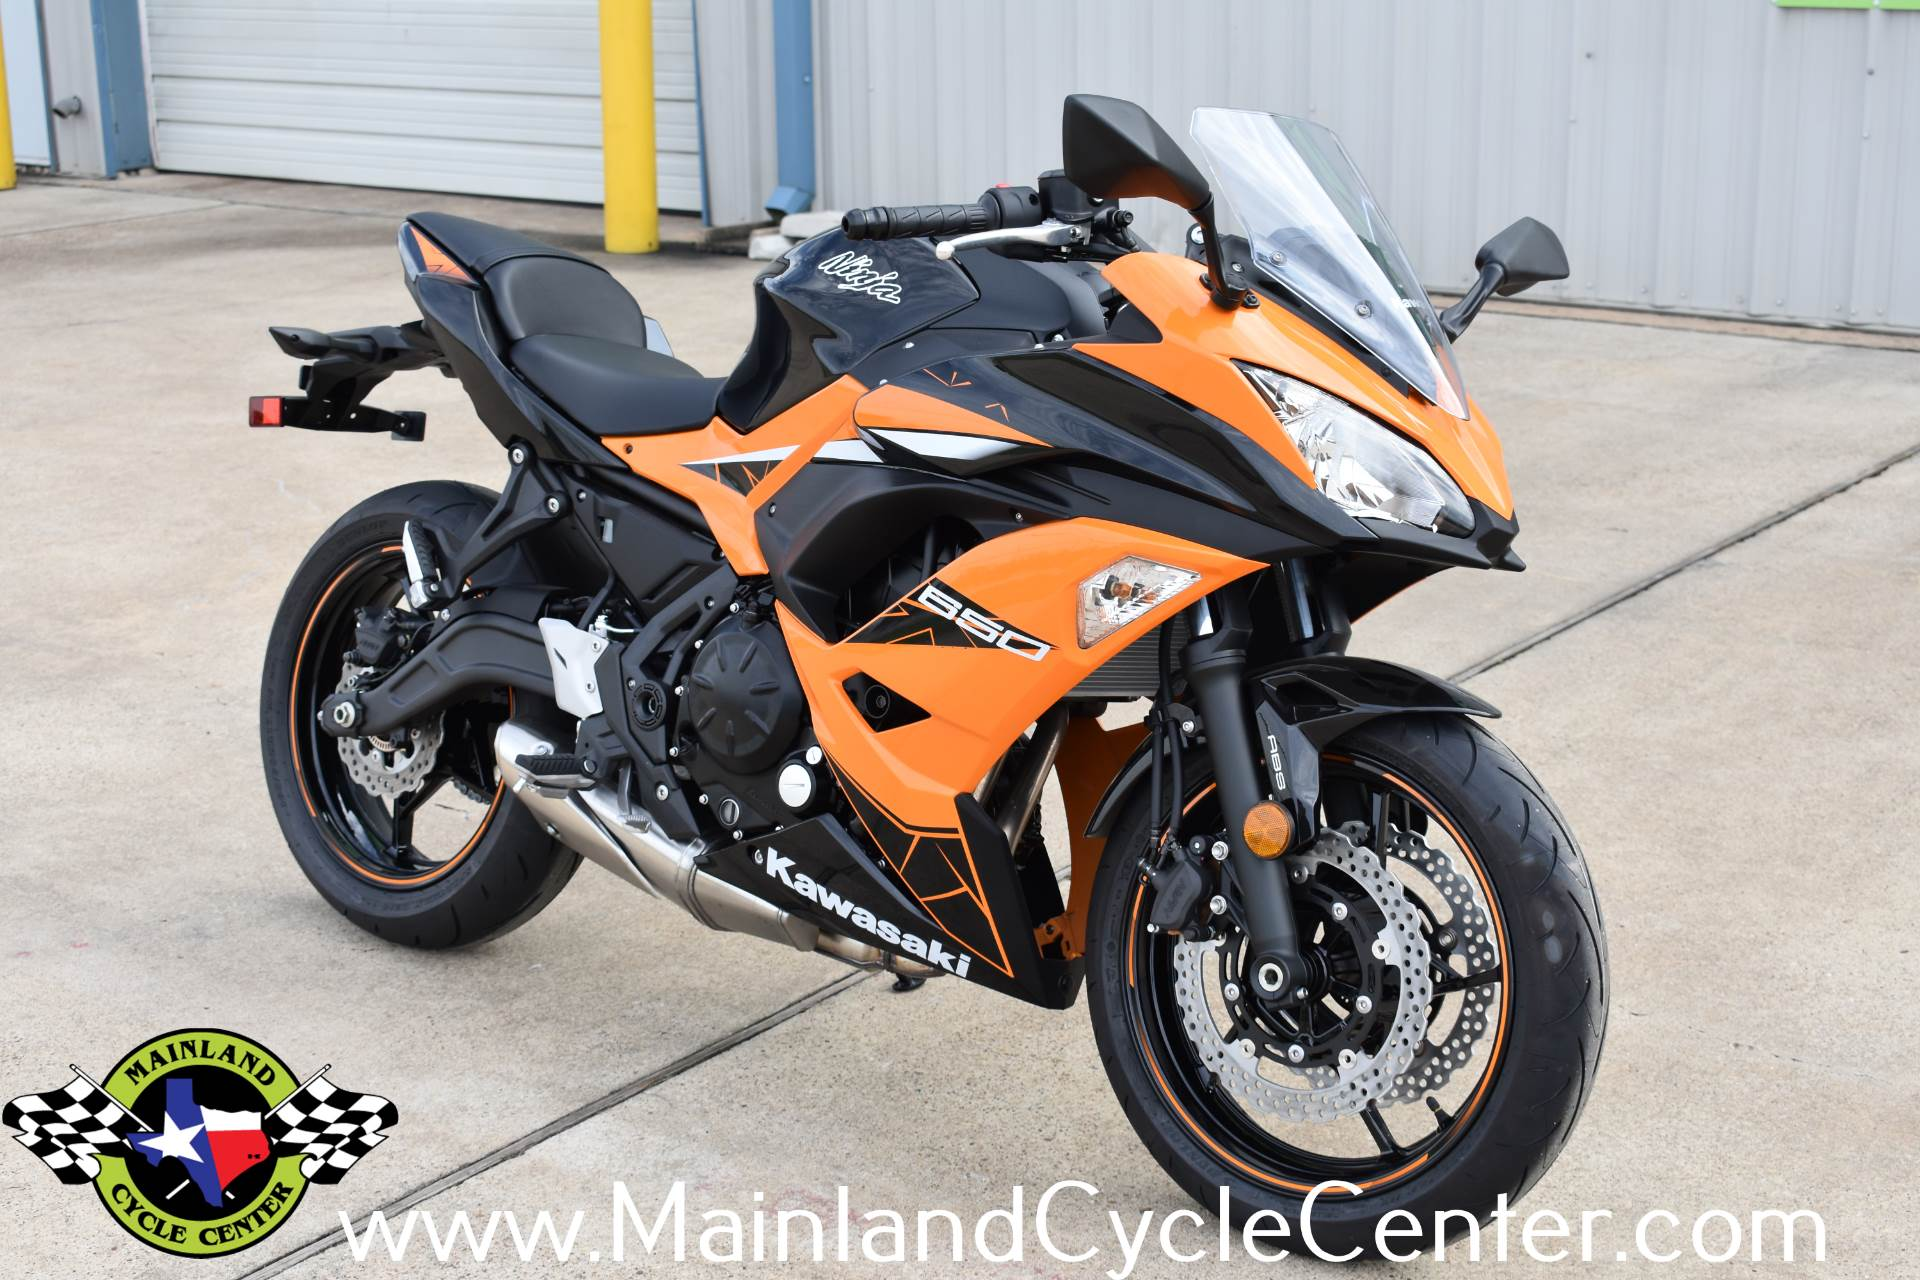 New 2019 Kawasaki Ninja 650 Abs Candy Steel Furnace Orange